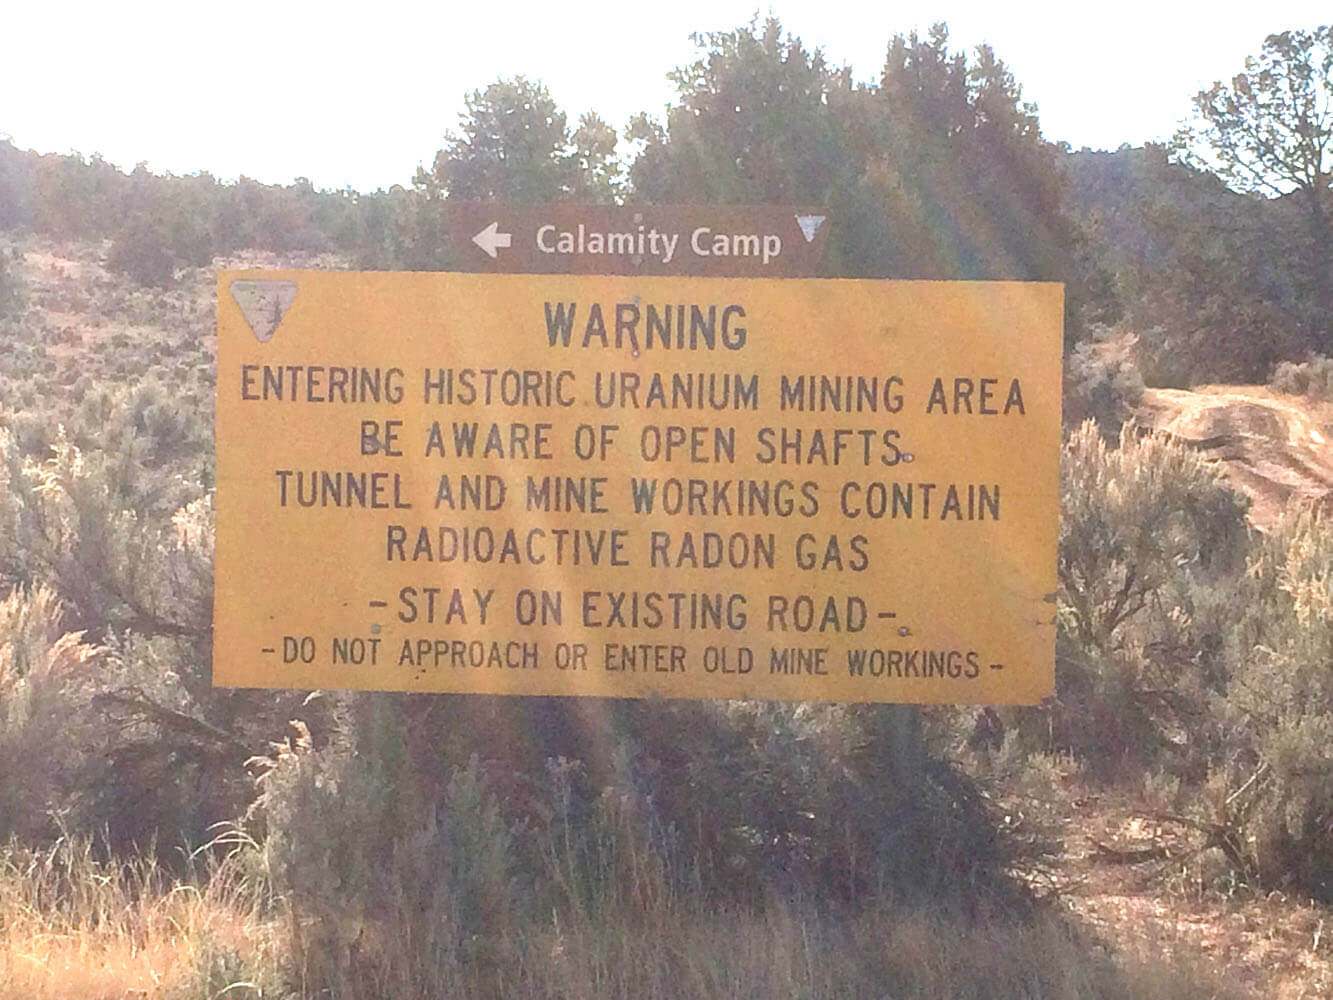 A warning sign as you enter the Calamity Camp reminds visitors of the potential hazards still present around the camp.